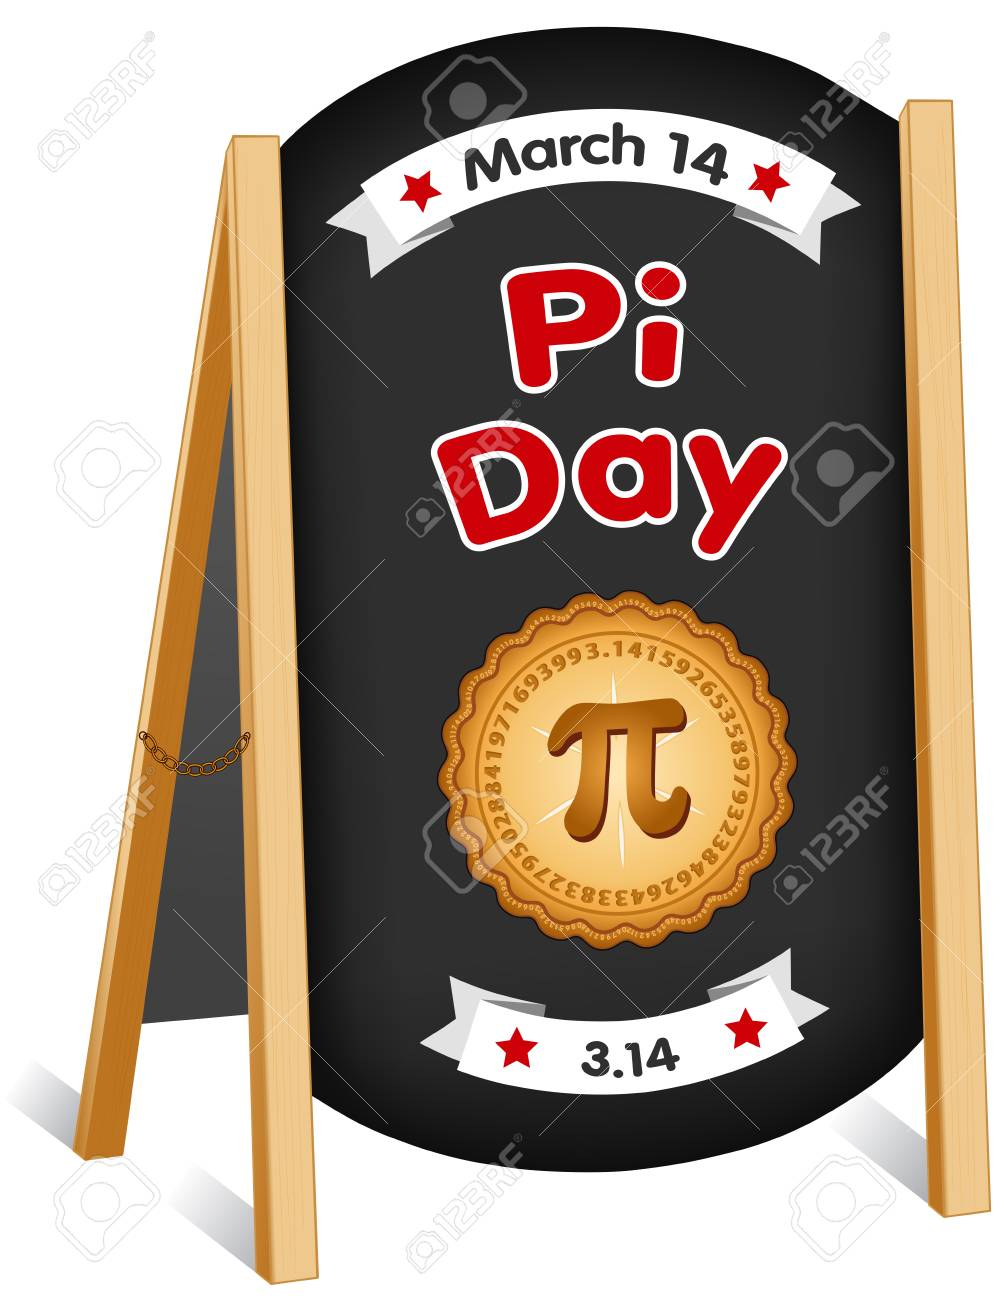 Pi Day, March 14, international holiday to celebrate the mathematical constant pi and eat lots of fresh baked sweet pie, sidewalk chalk board sign, folding easel, brass chain. EPS8 compatible. - 125108991